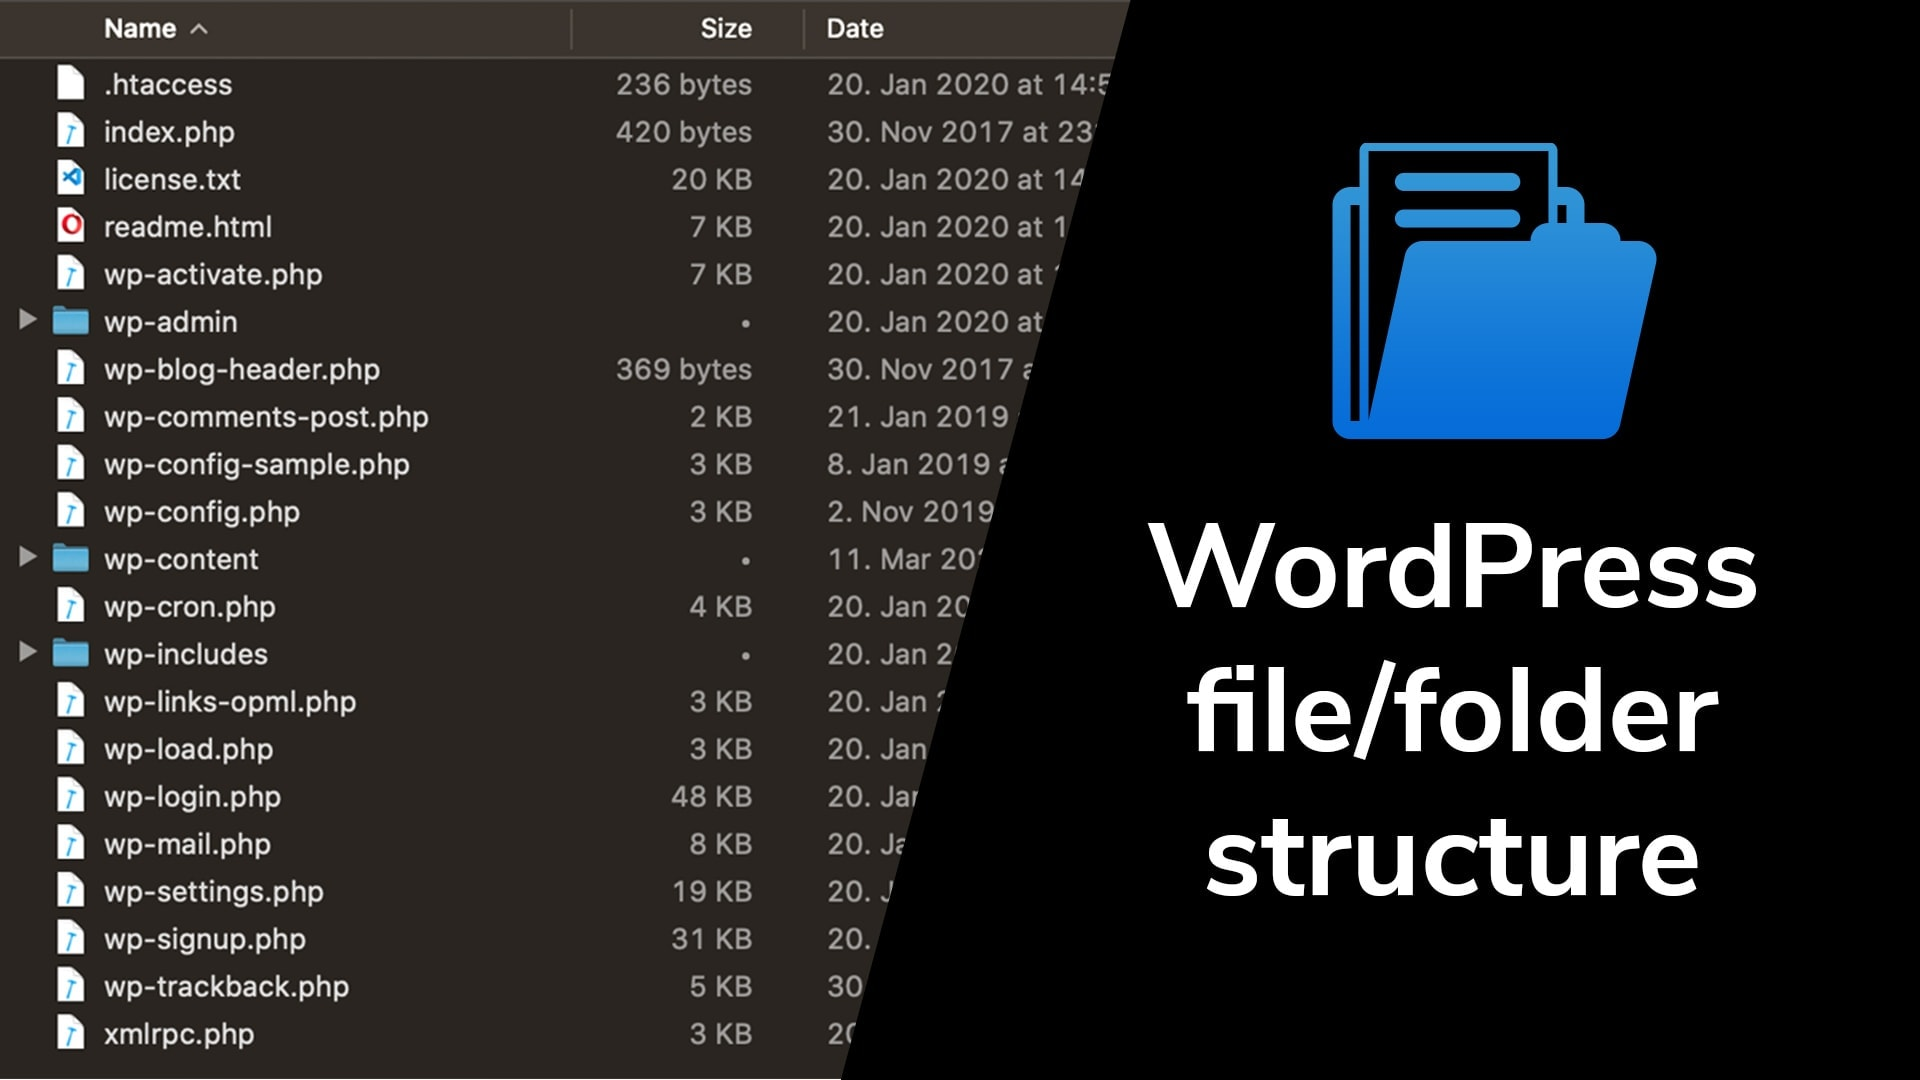 WordPress folder structure: wp-content/ folder structure